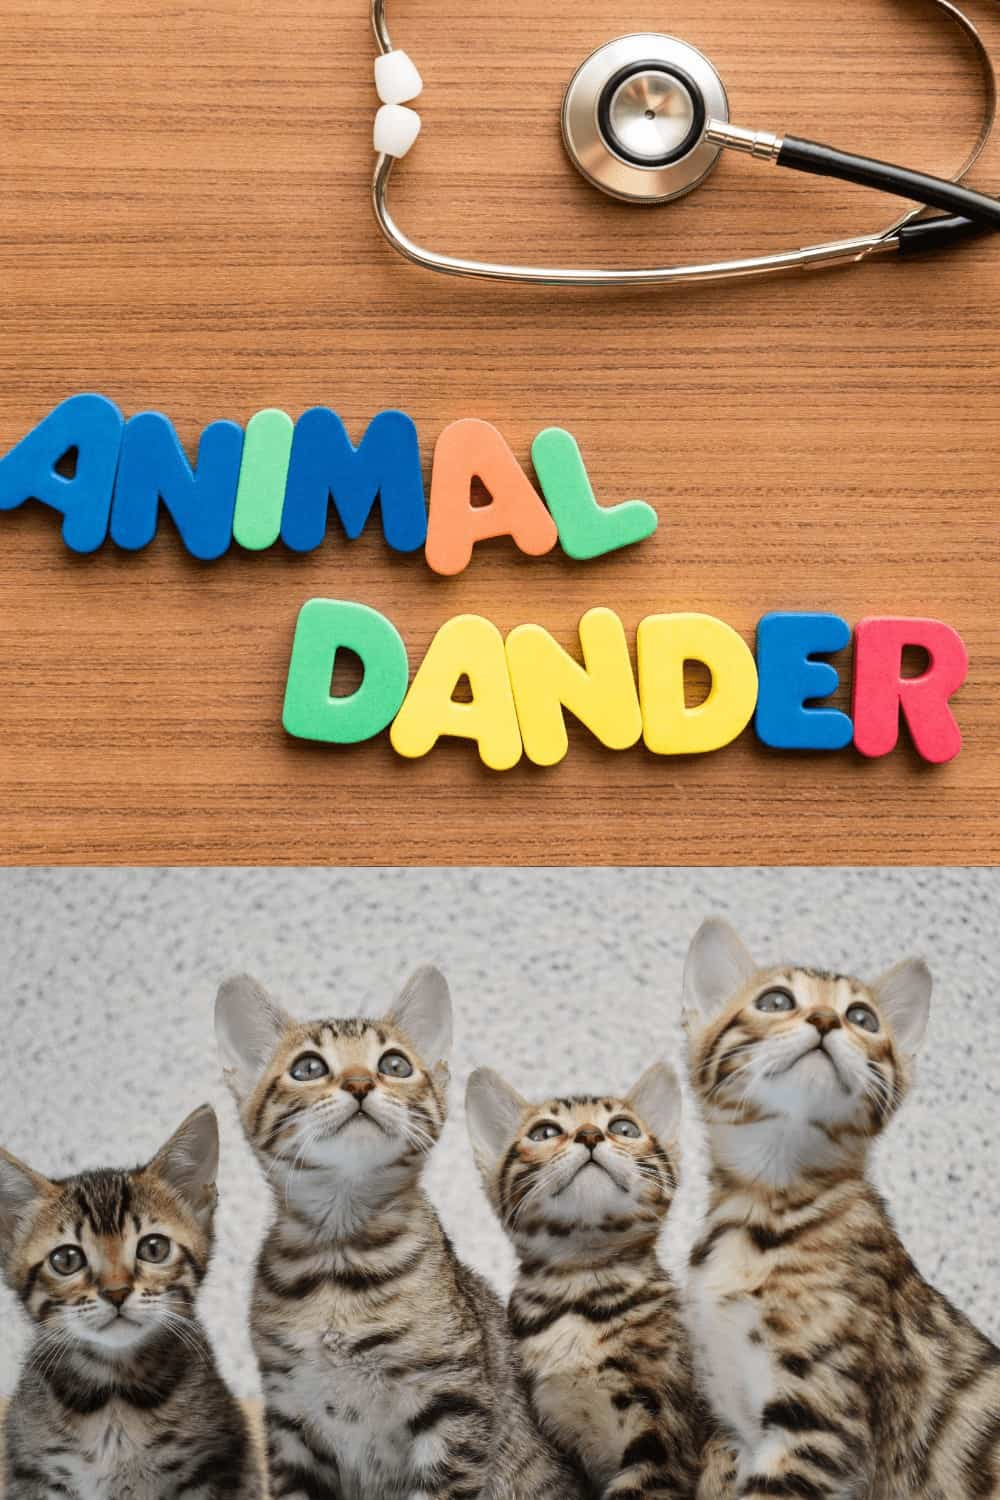 pet dander with cats